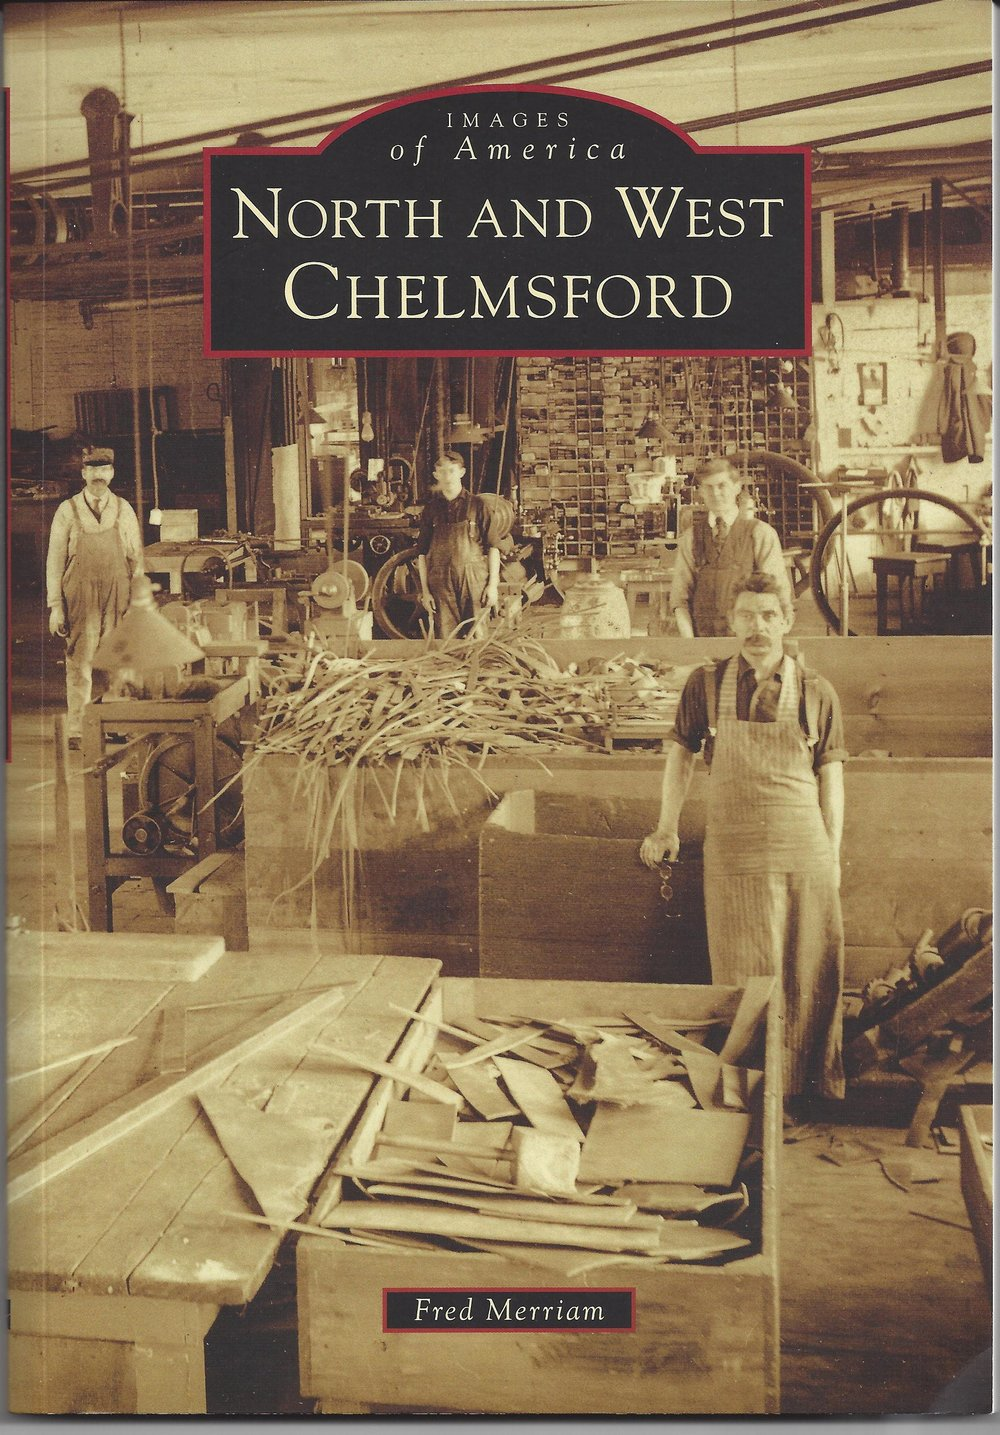 North & West Chelmsford Revisited (Book) Merriam $22 *New!